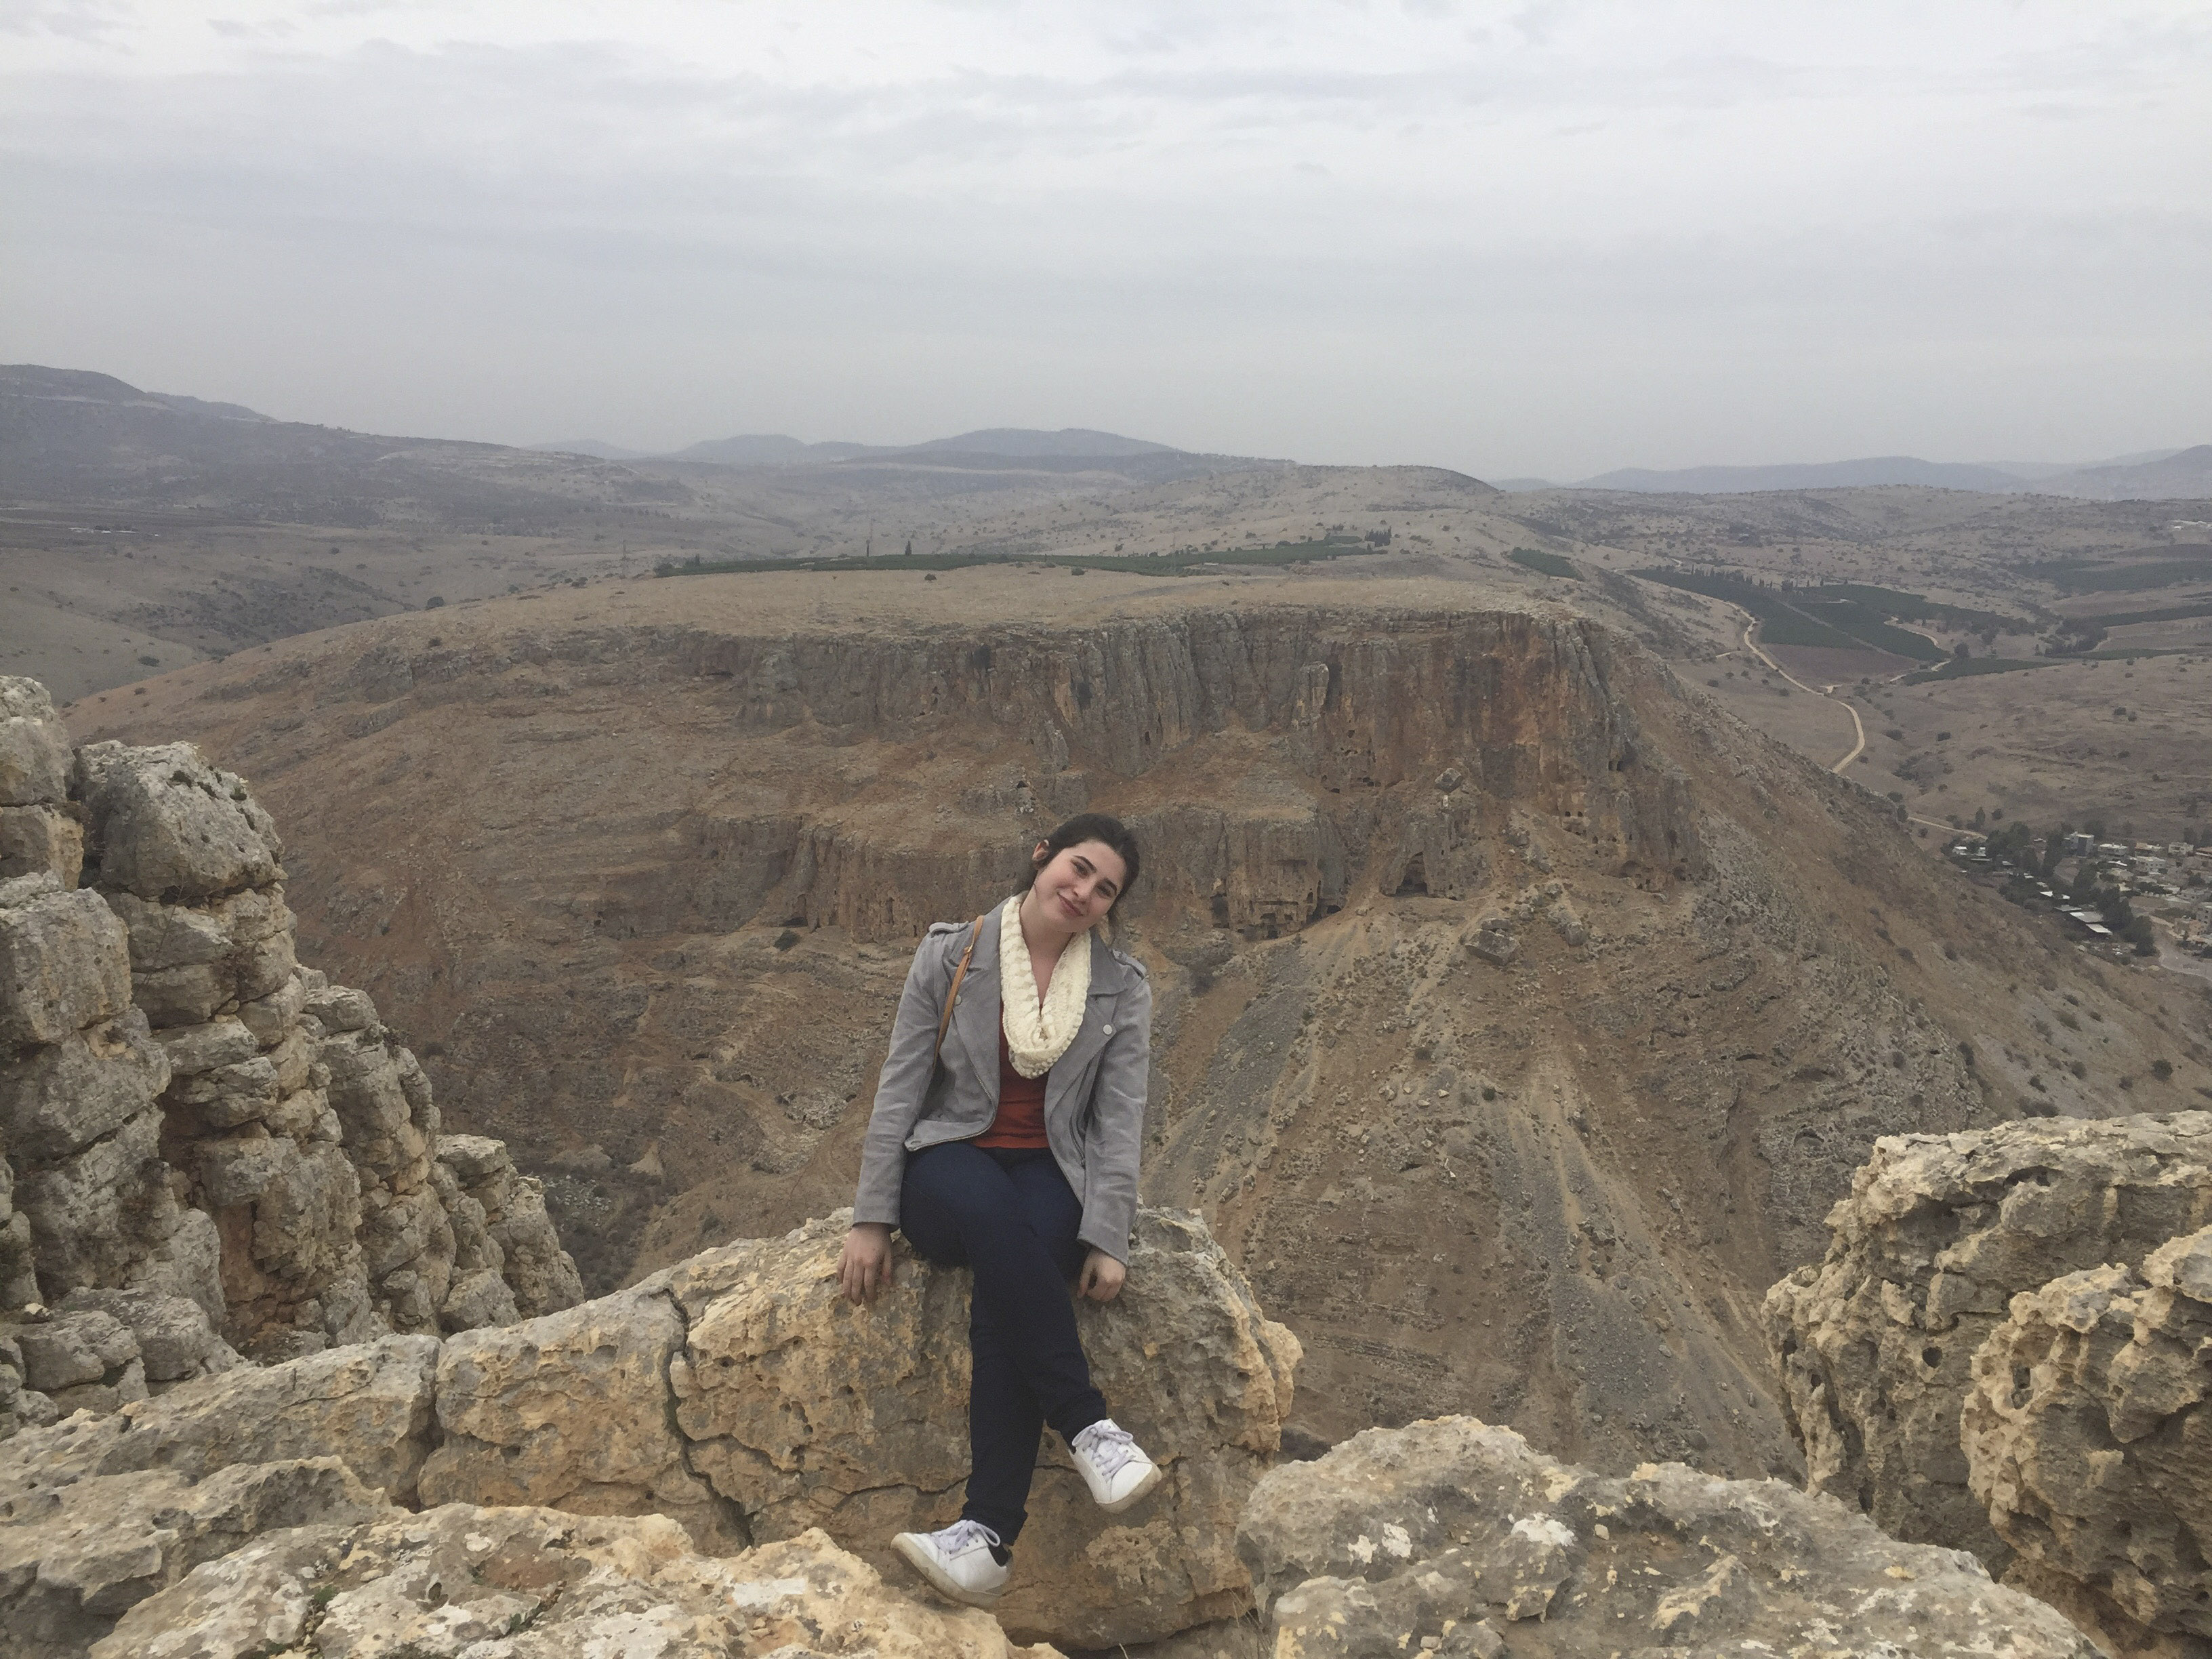 Eliana Dunn fell in love with Israel on her Birthright trip earlier this year.